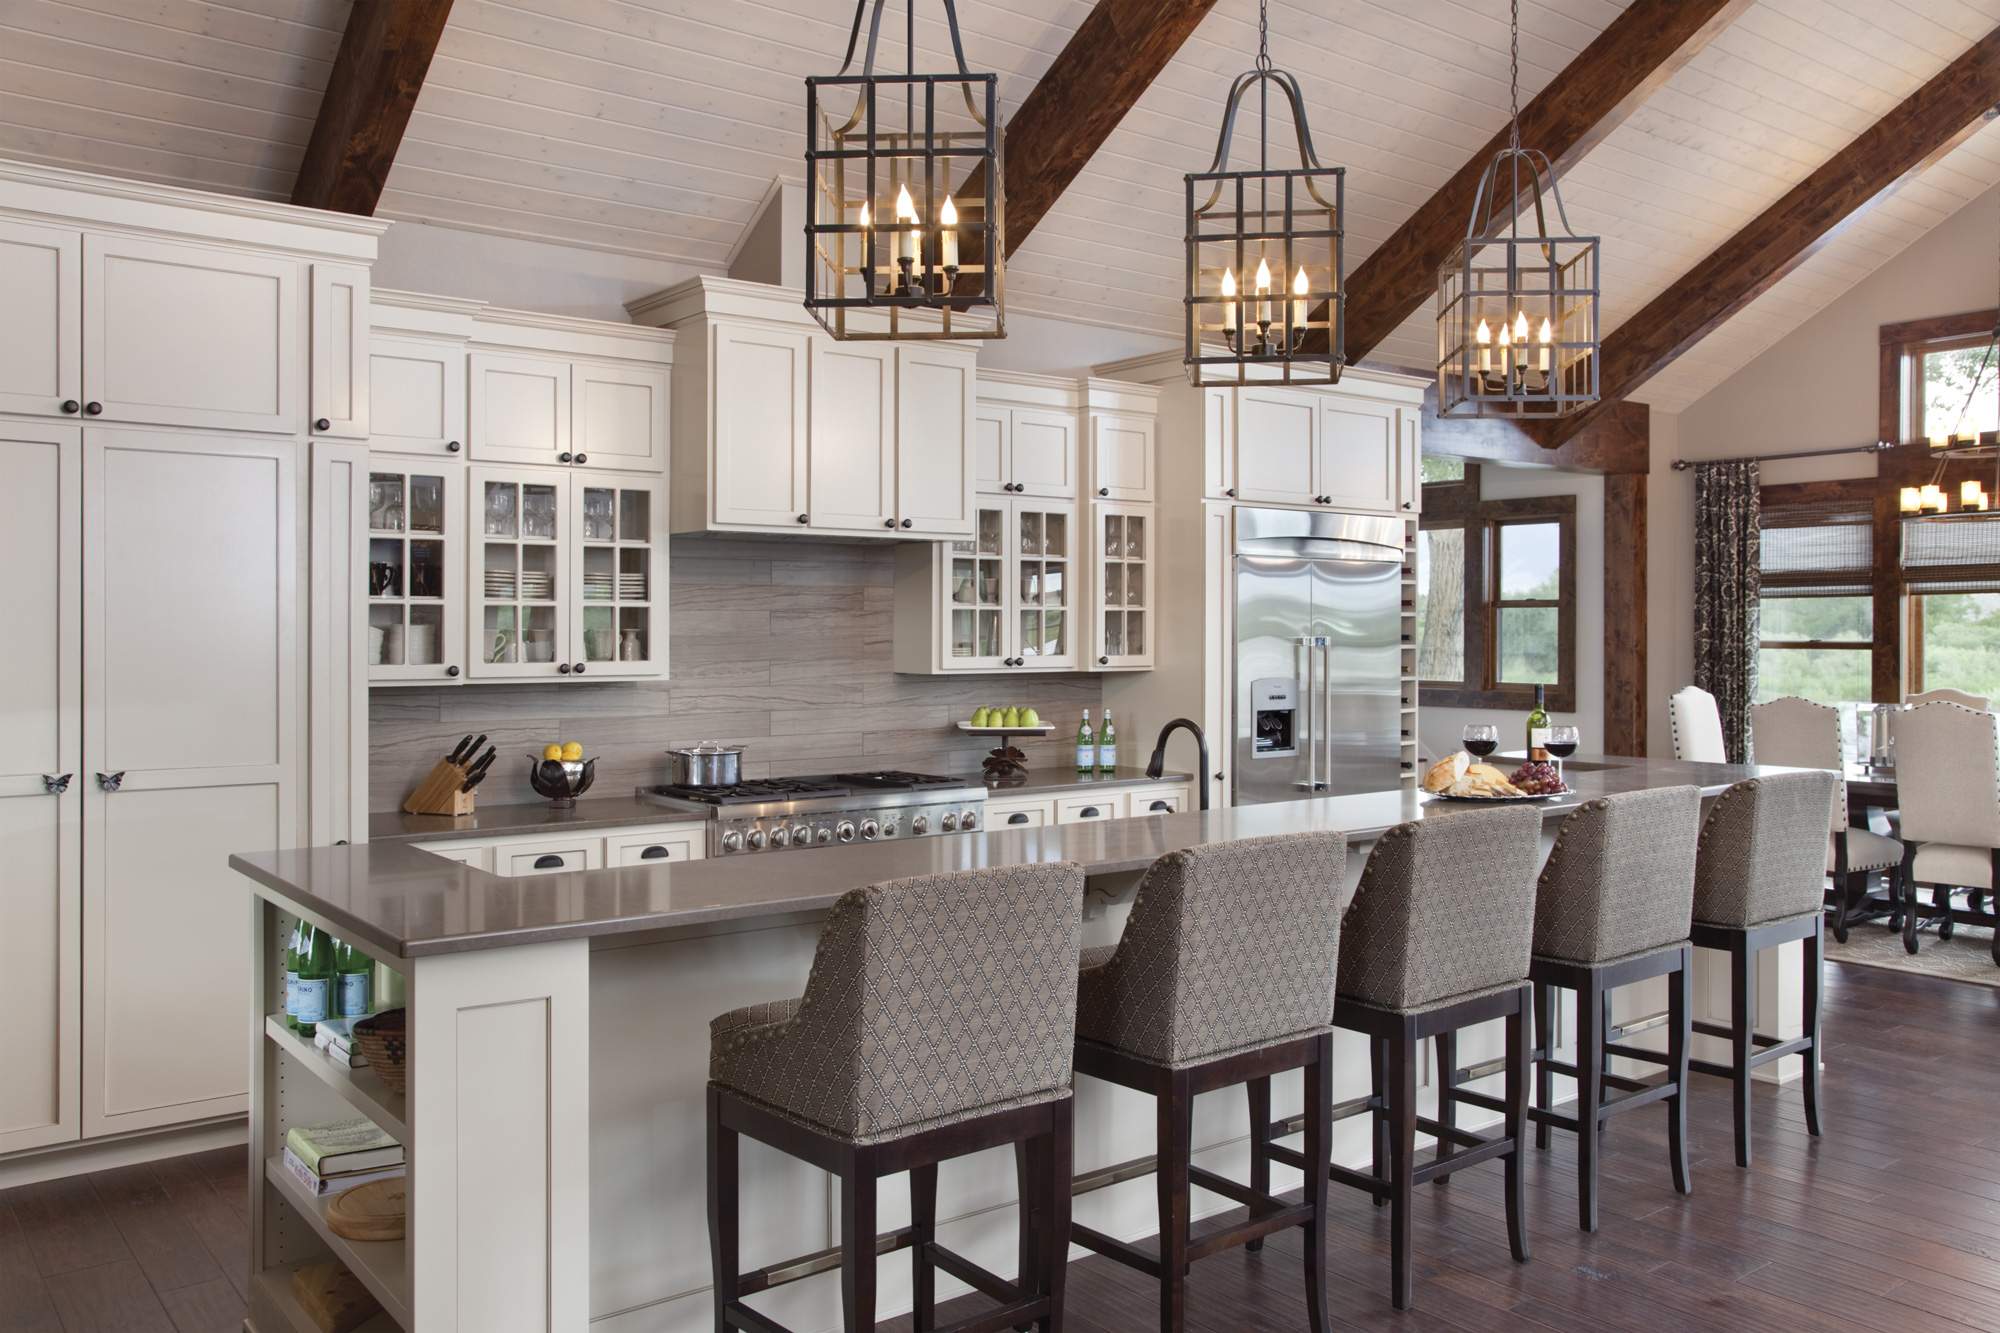 The Kitchenu0027s Design Was A Collaborative Effort Between Steve Farnam And  Heather Harkovich. In The